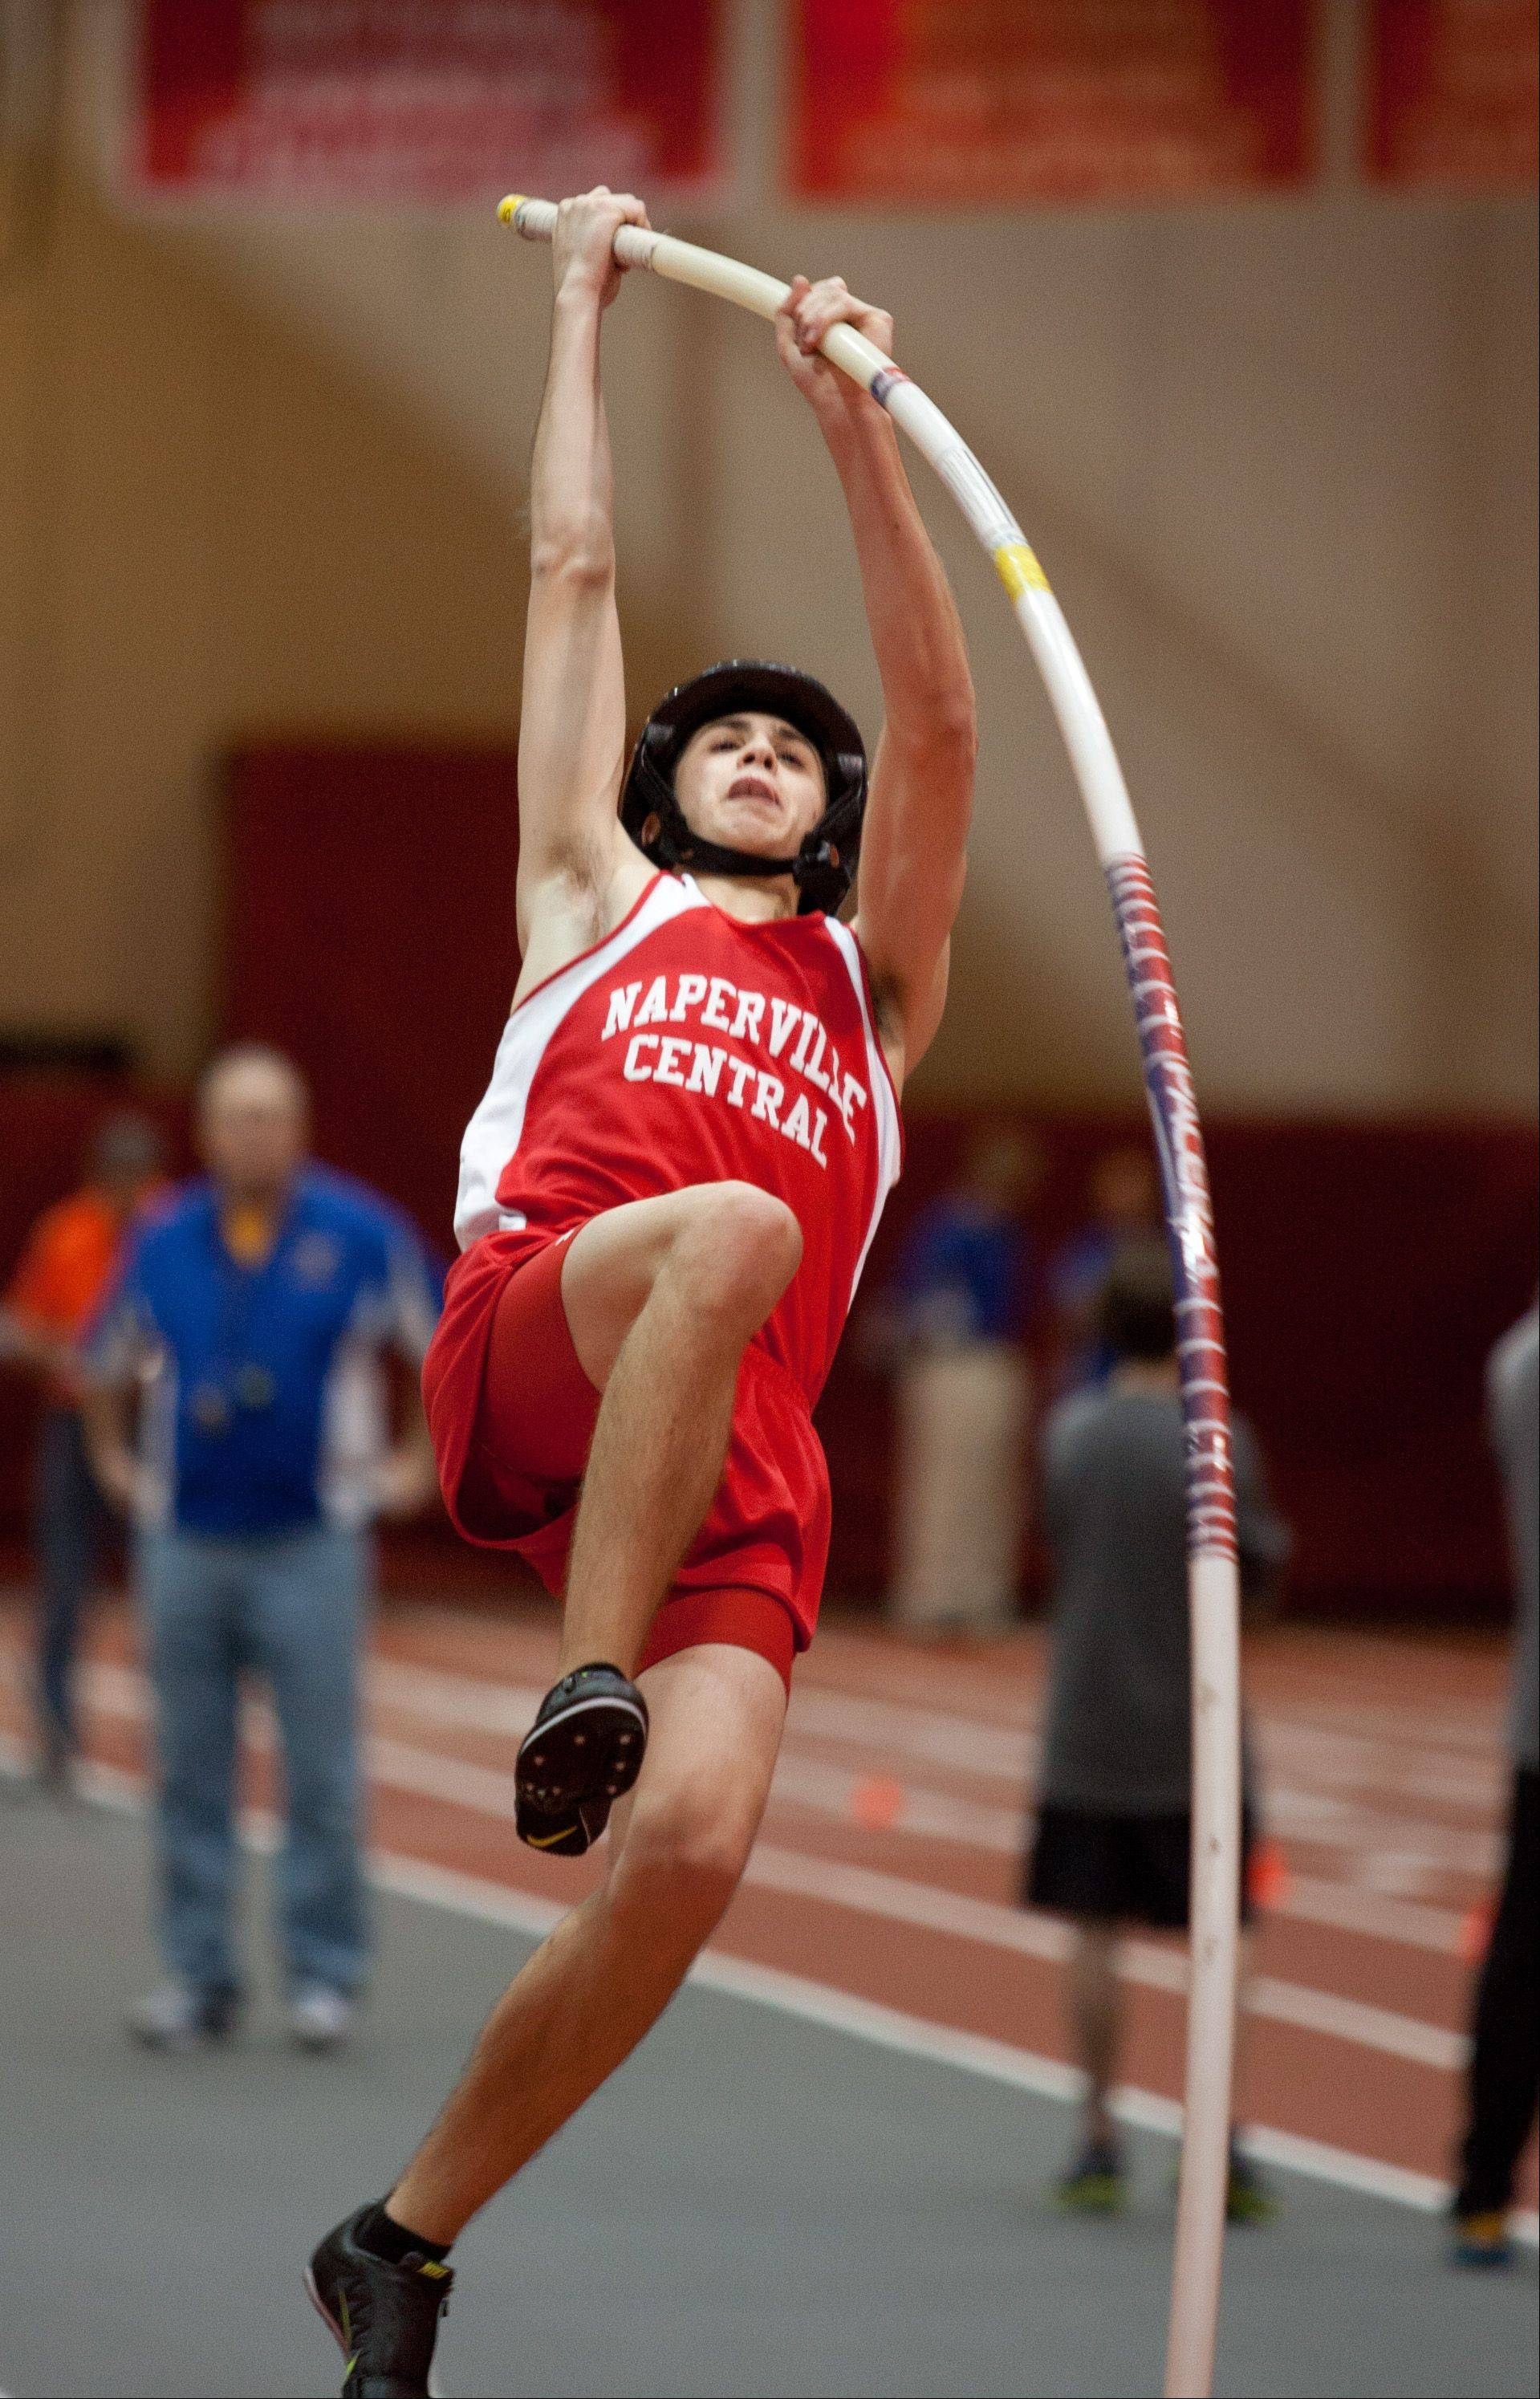 Naperville Central's Justin Allara competes in the pole vault event, during the DuPage Valley Conference boys track meet.